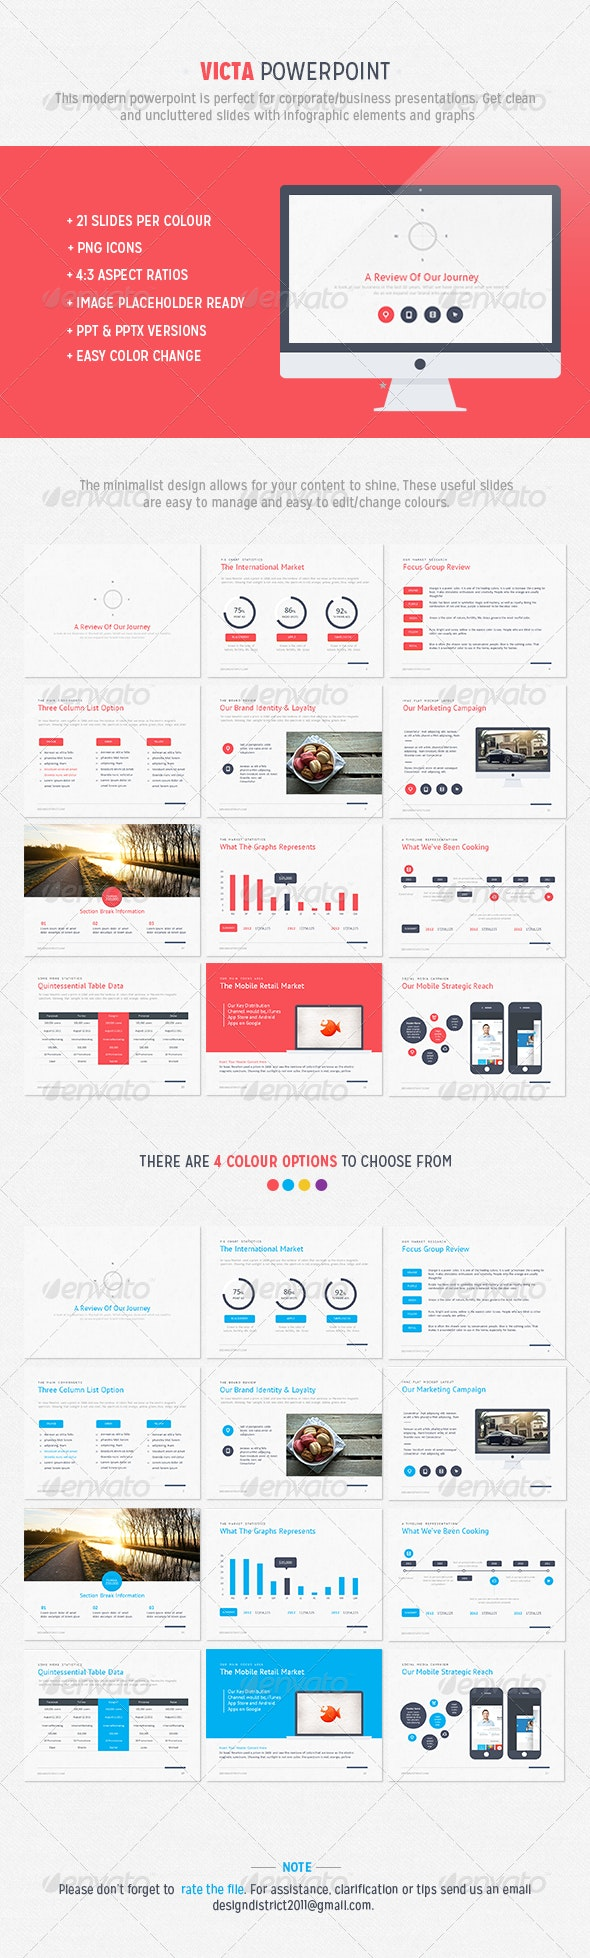 Victa Powerpoint - Business PowerPoint Templates